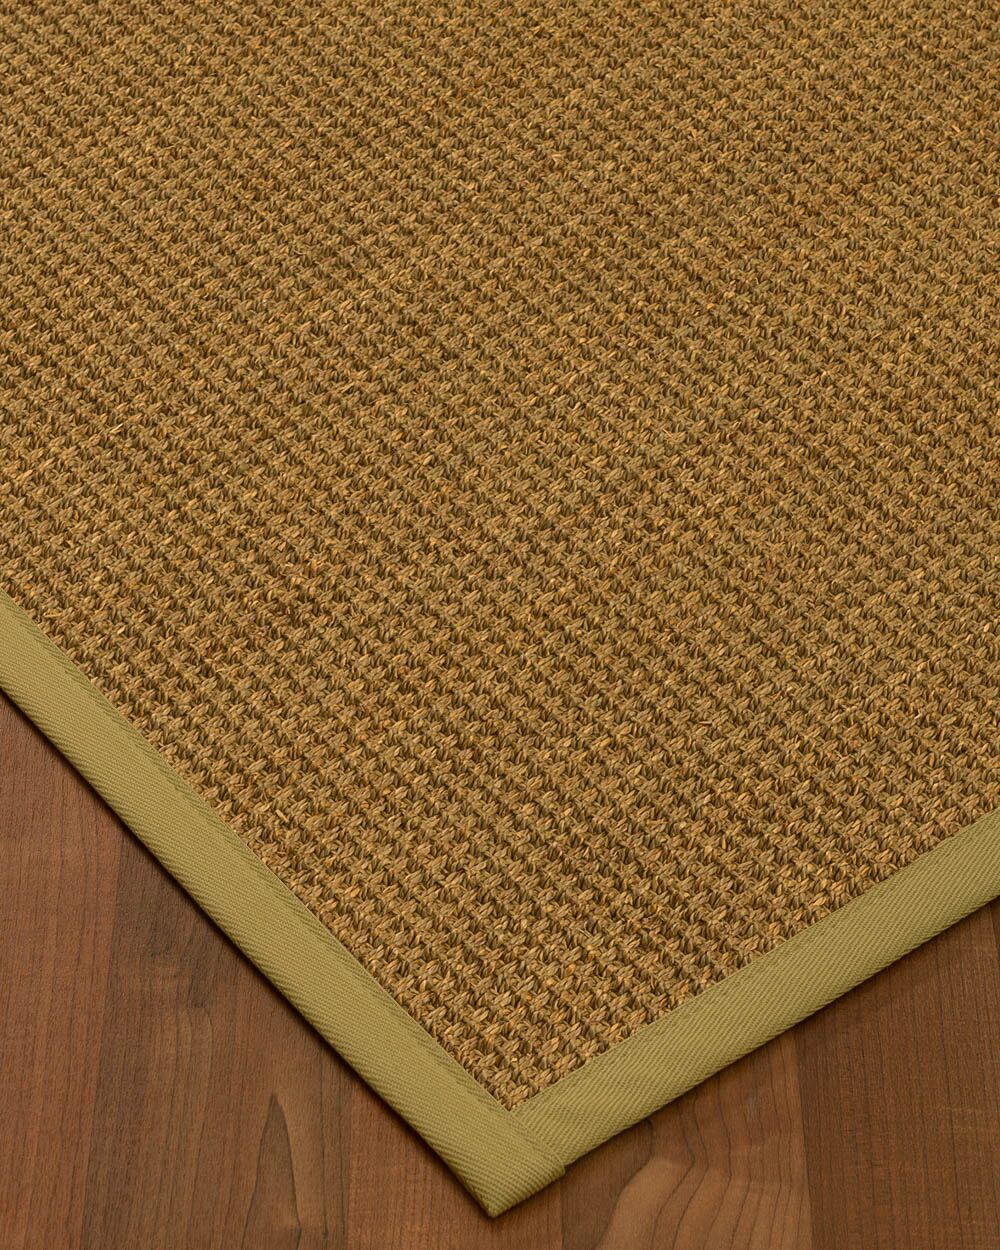 Chavez Border Hand-Woven Beige Area Rug Rug Size: Rectangle 5' x 8', Rug Pad Included: Yes